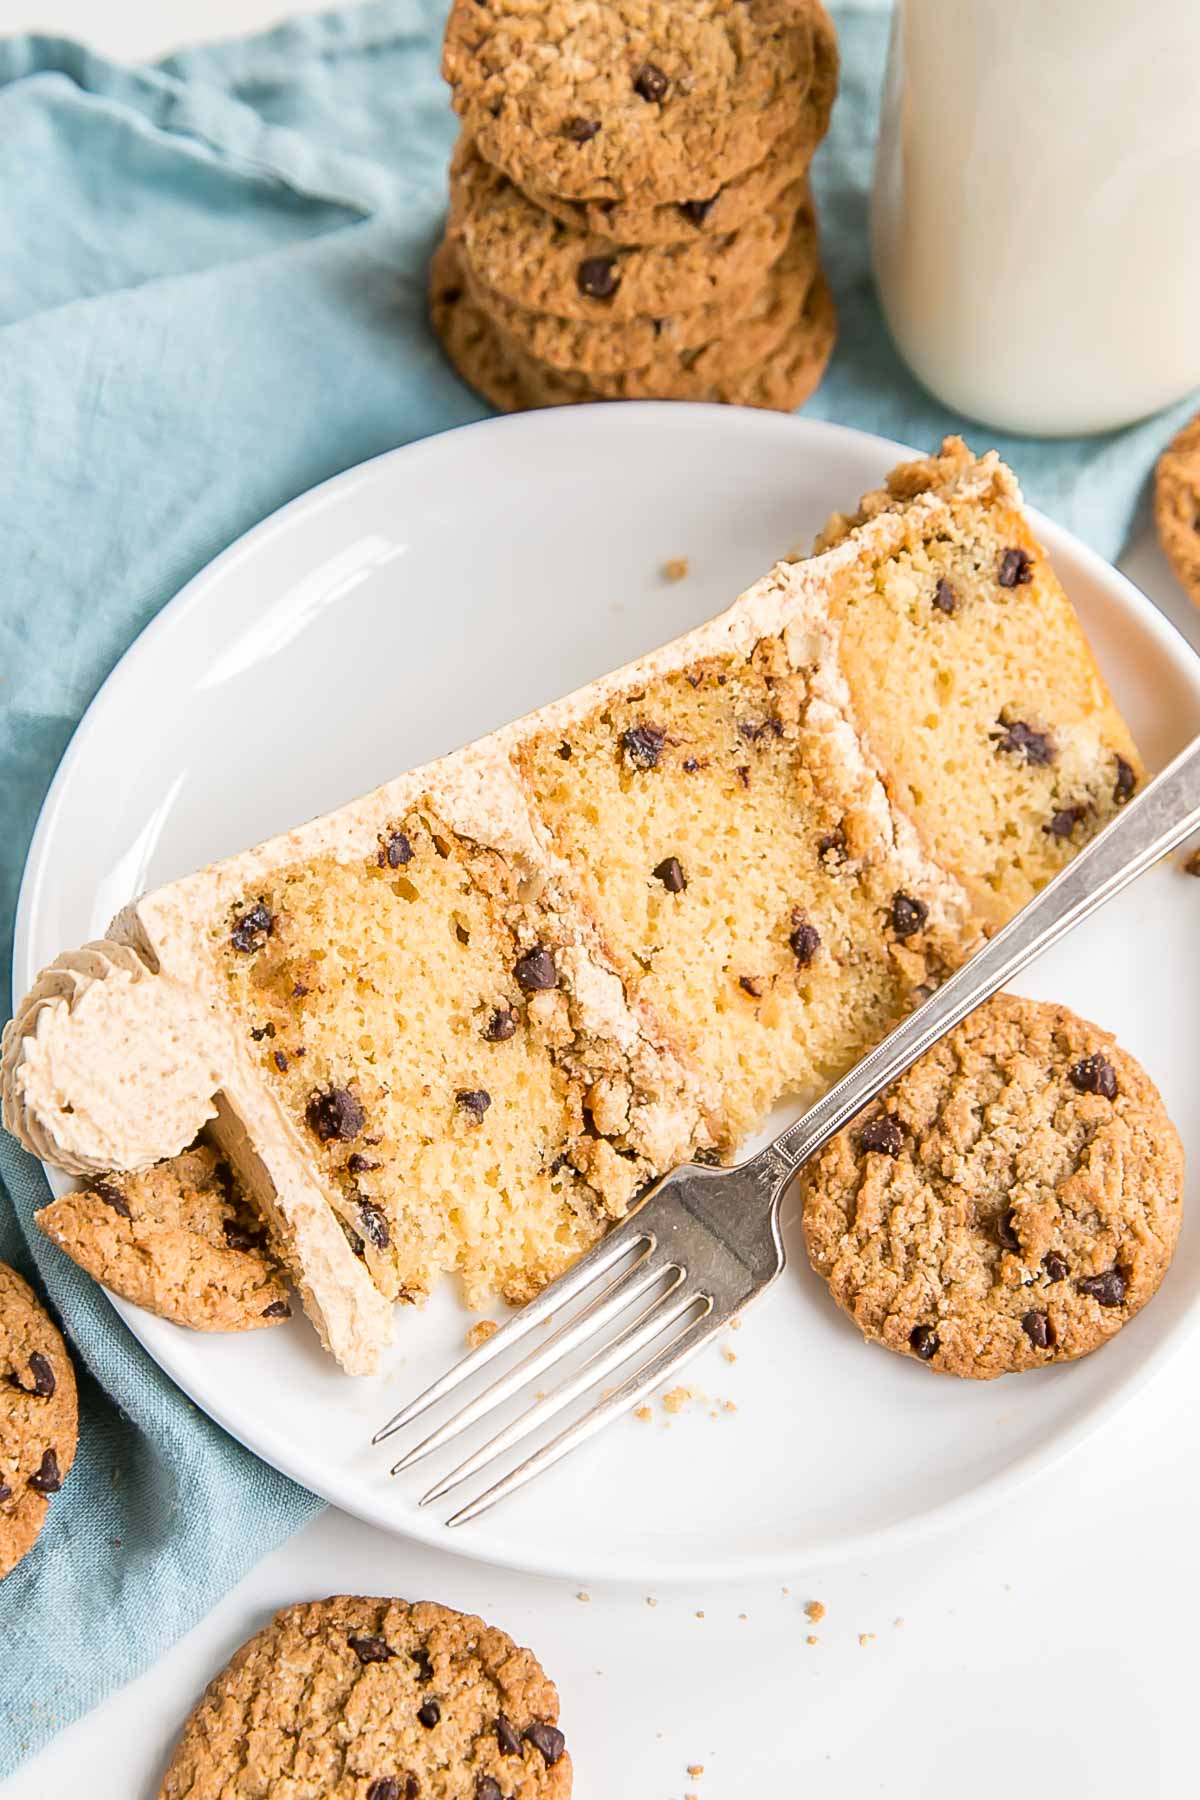 Slice of oatmeal cookie cake on a plate.